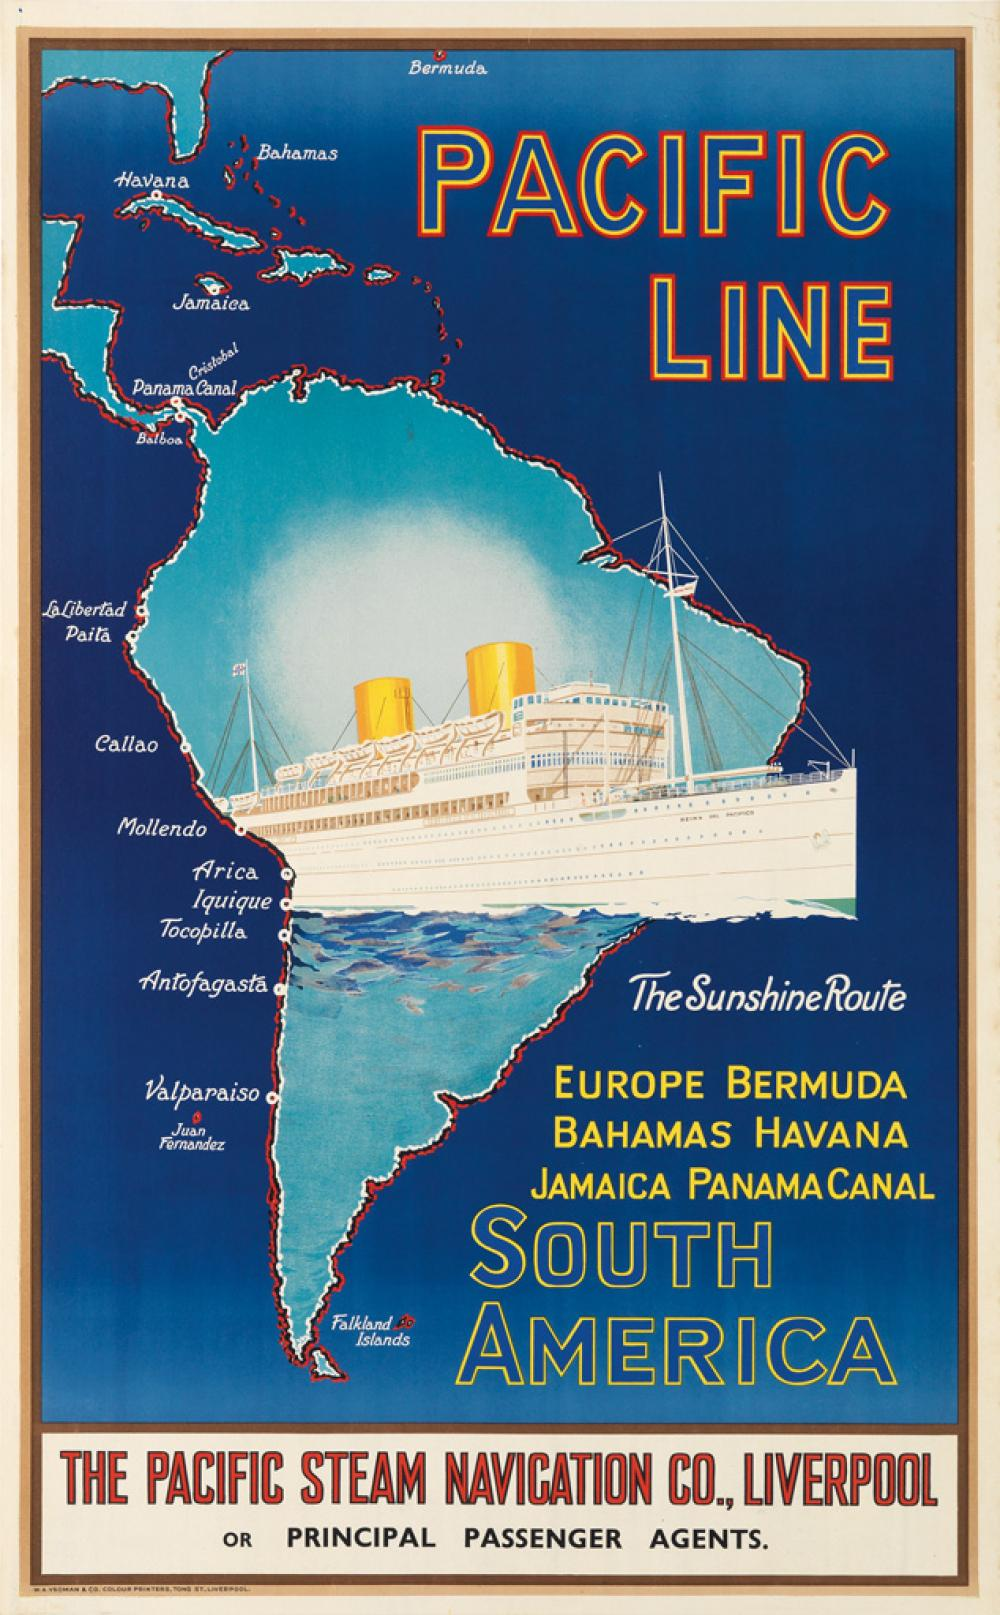 DESIGNER UNKNOWN. PACIFIC LINE / SOUTH AMERICA. Circa 1930s. 40x25 inches, 101x63 cm. W.A. Yeoman & Co., Liverpool.